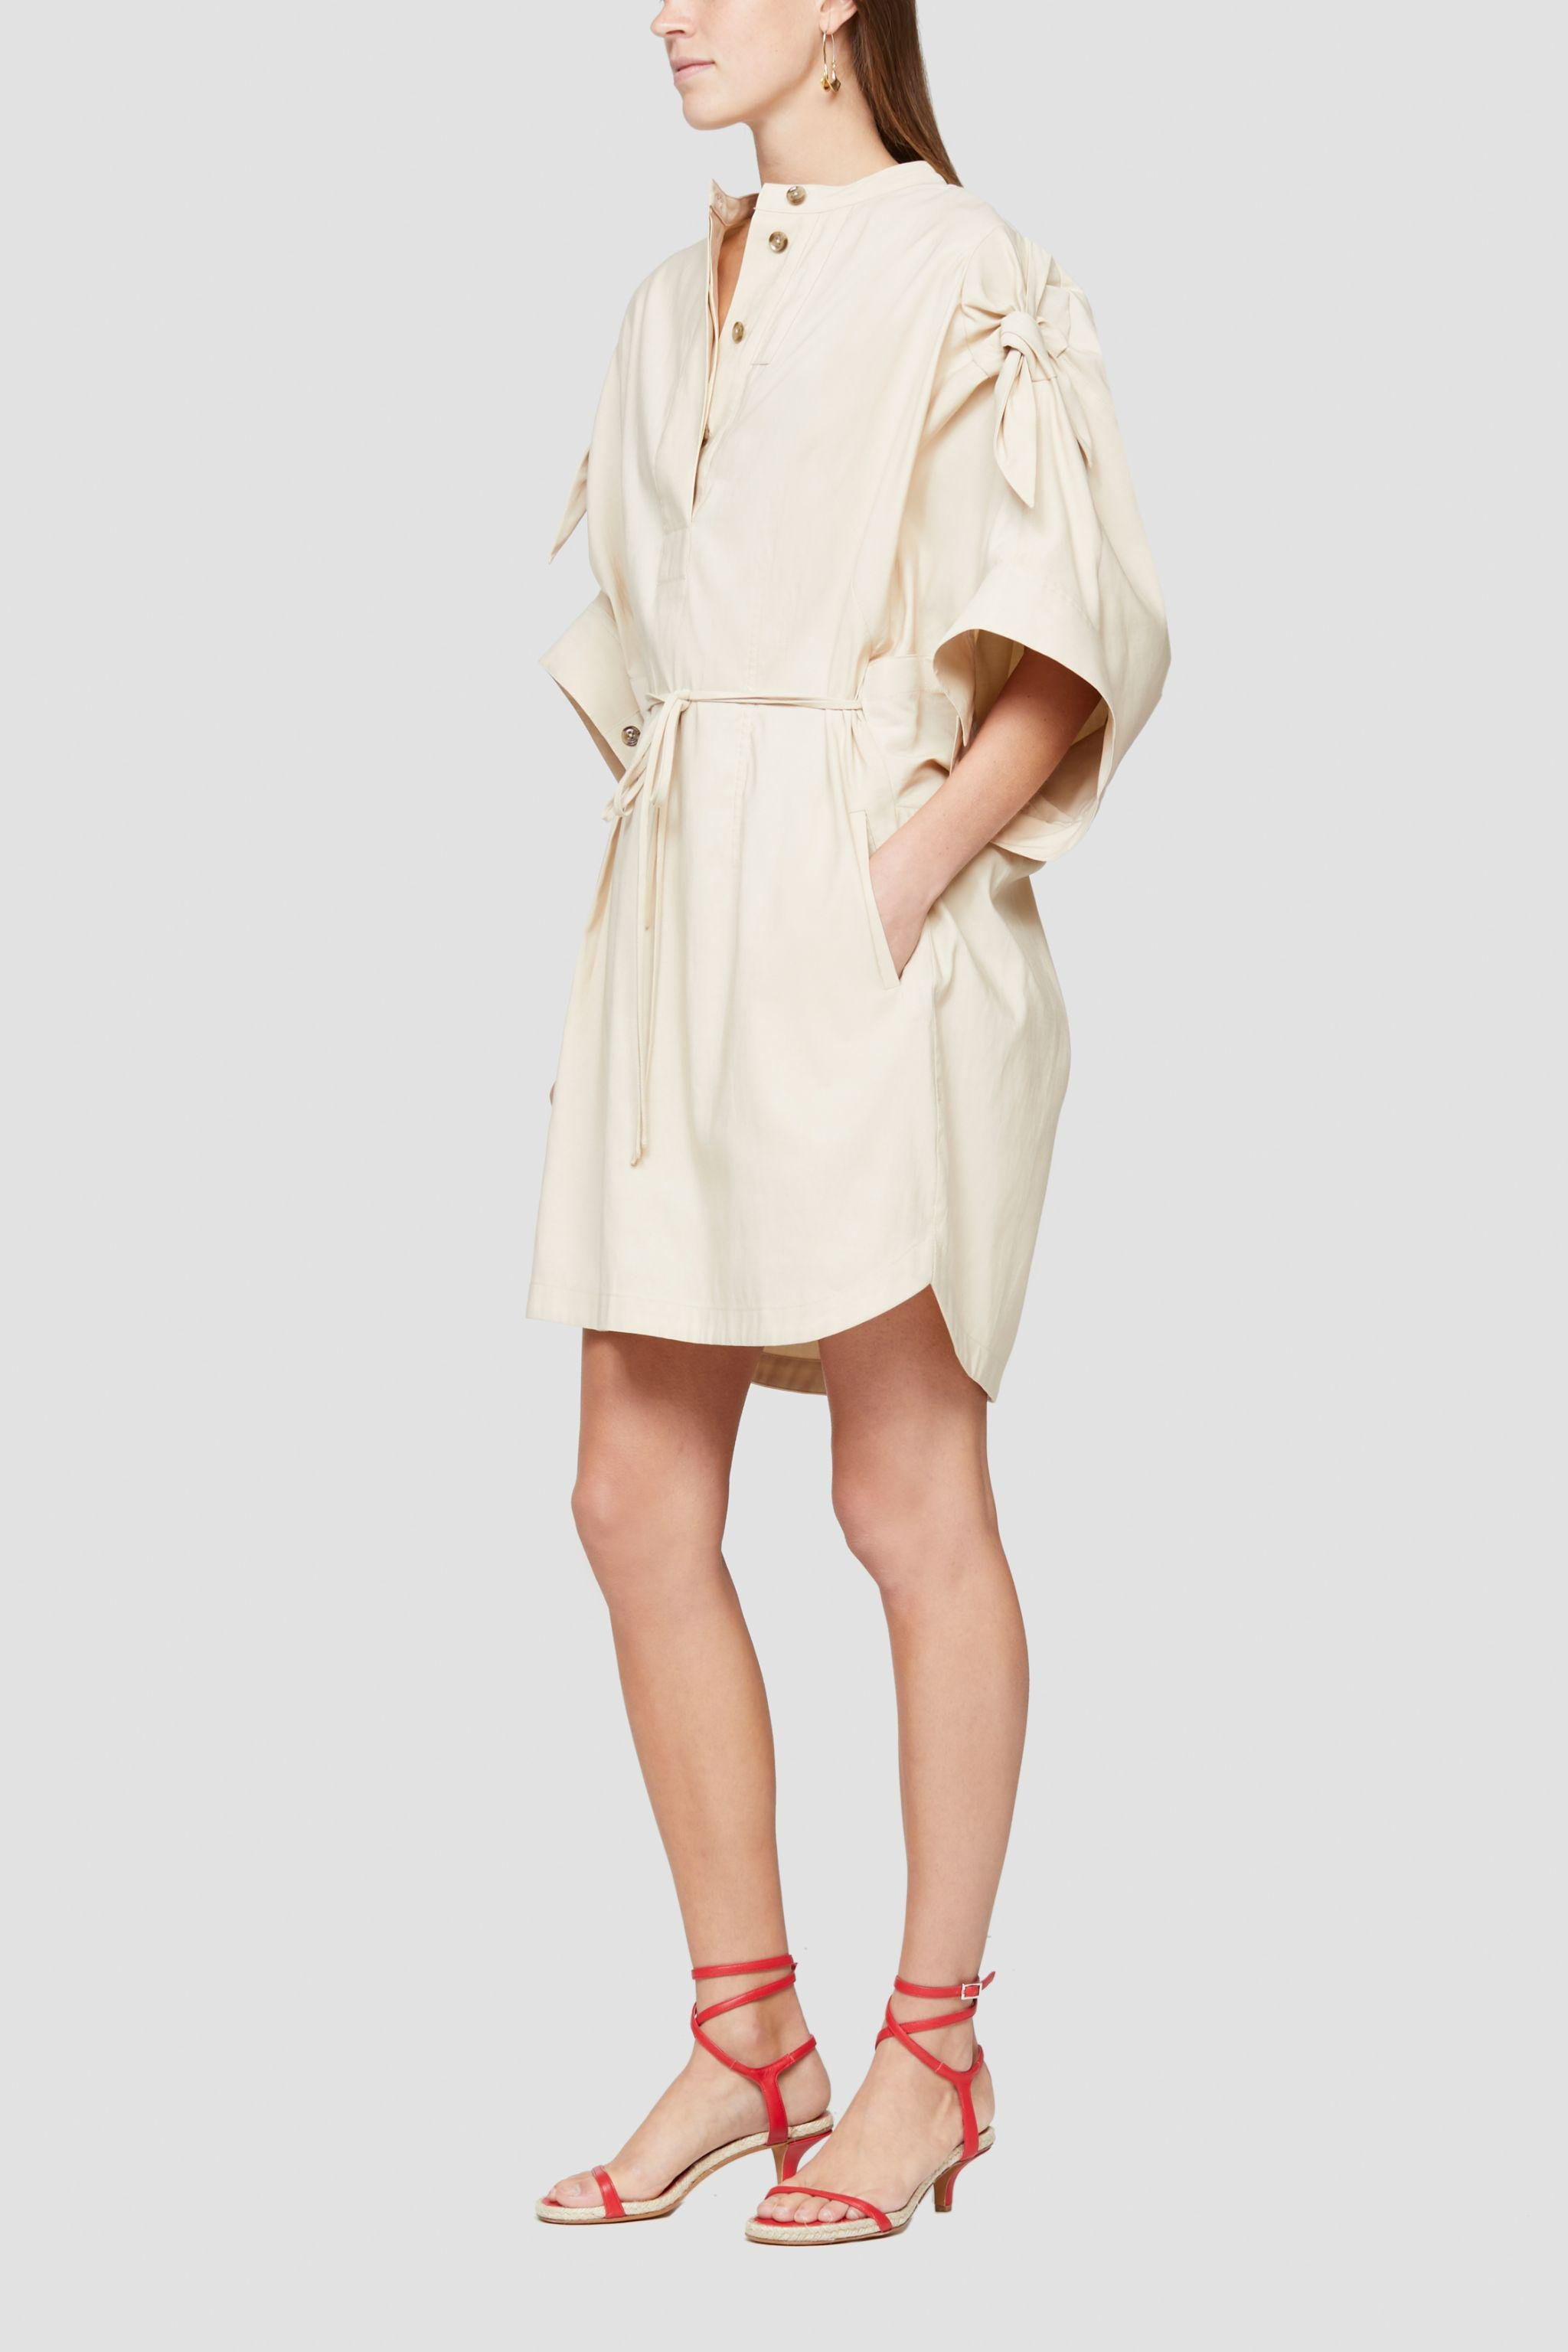 Knotted Sleeve Dress 2